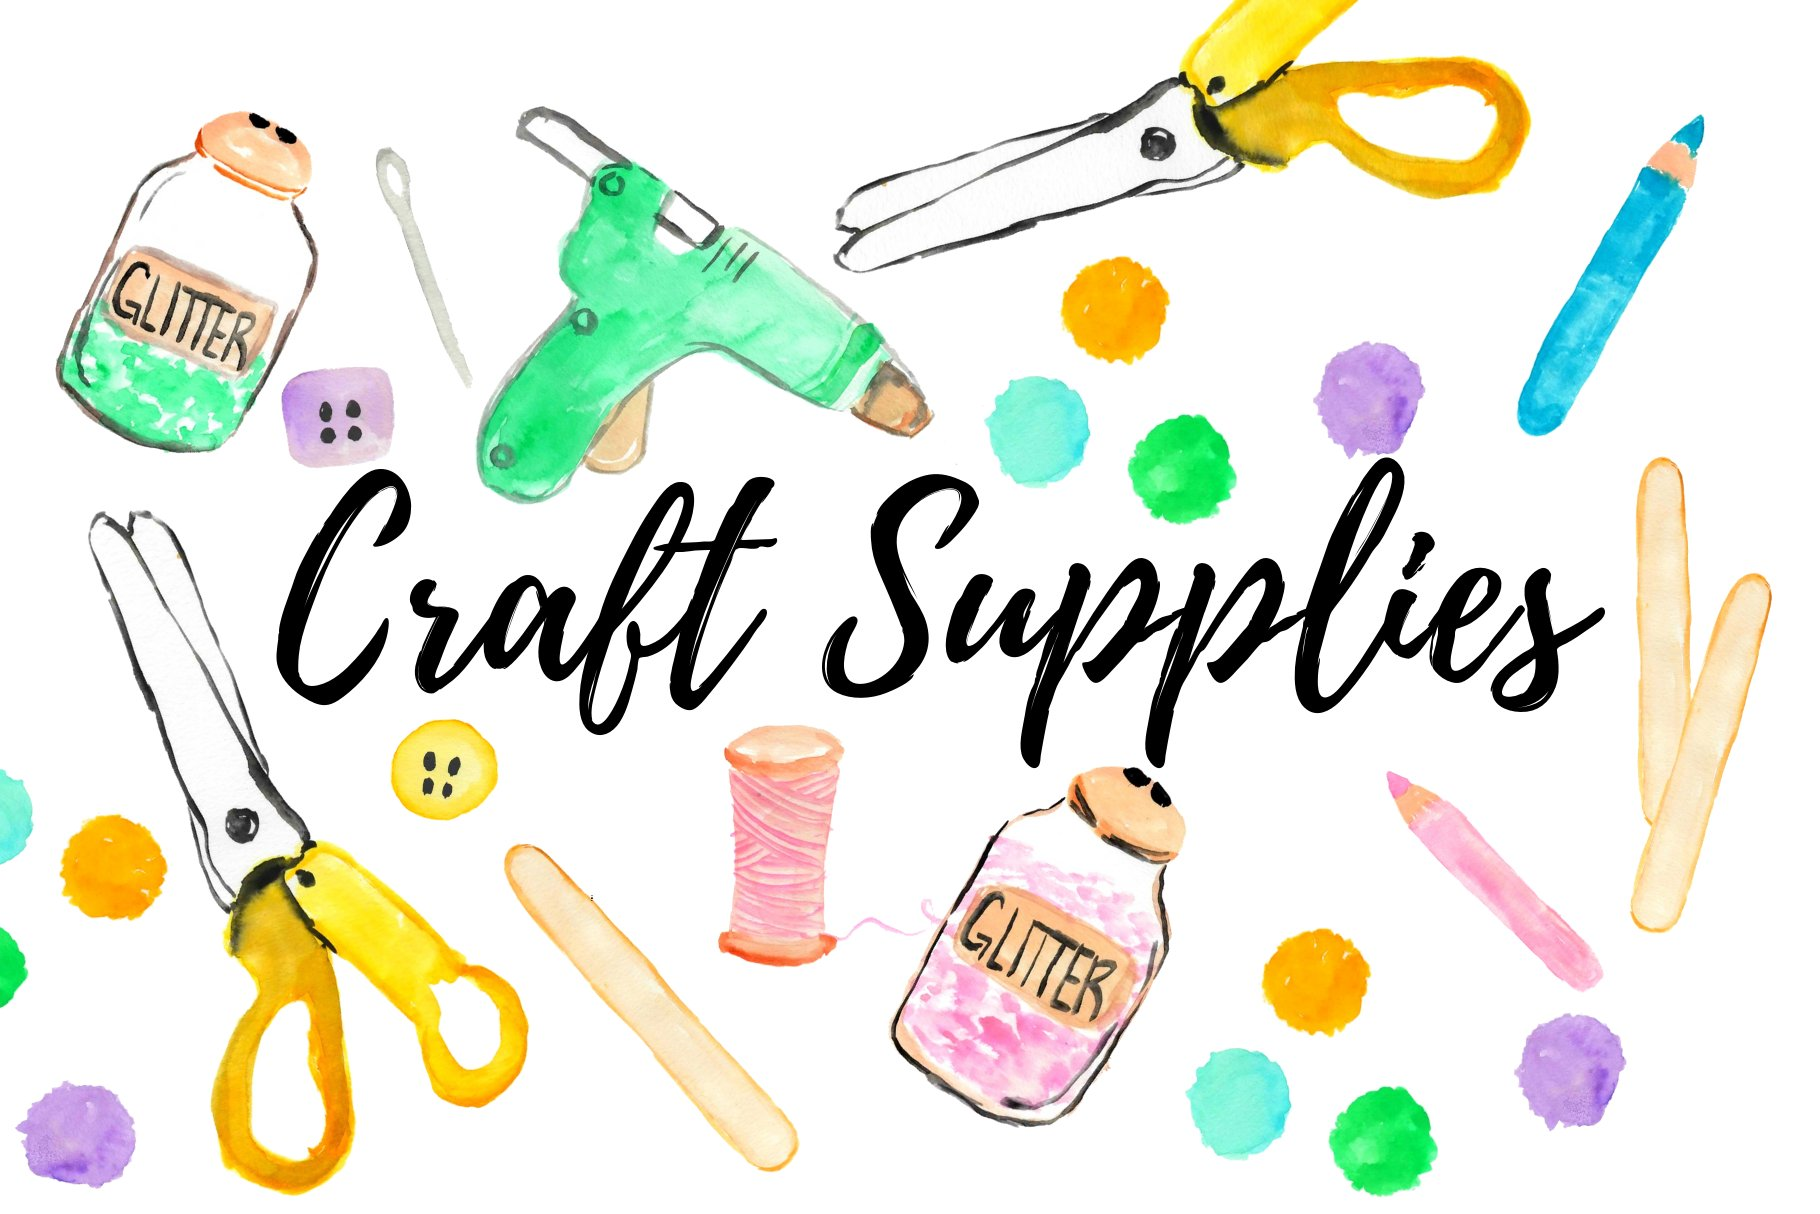 Arts and crafts shop clipart graphic Watercolor craft supplies clipart graphic